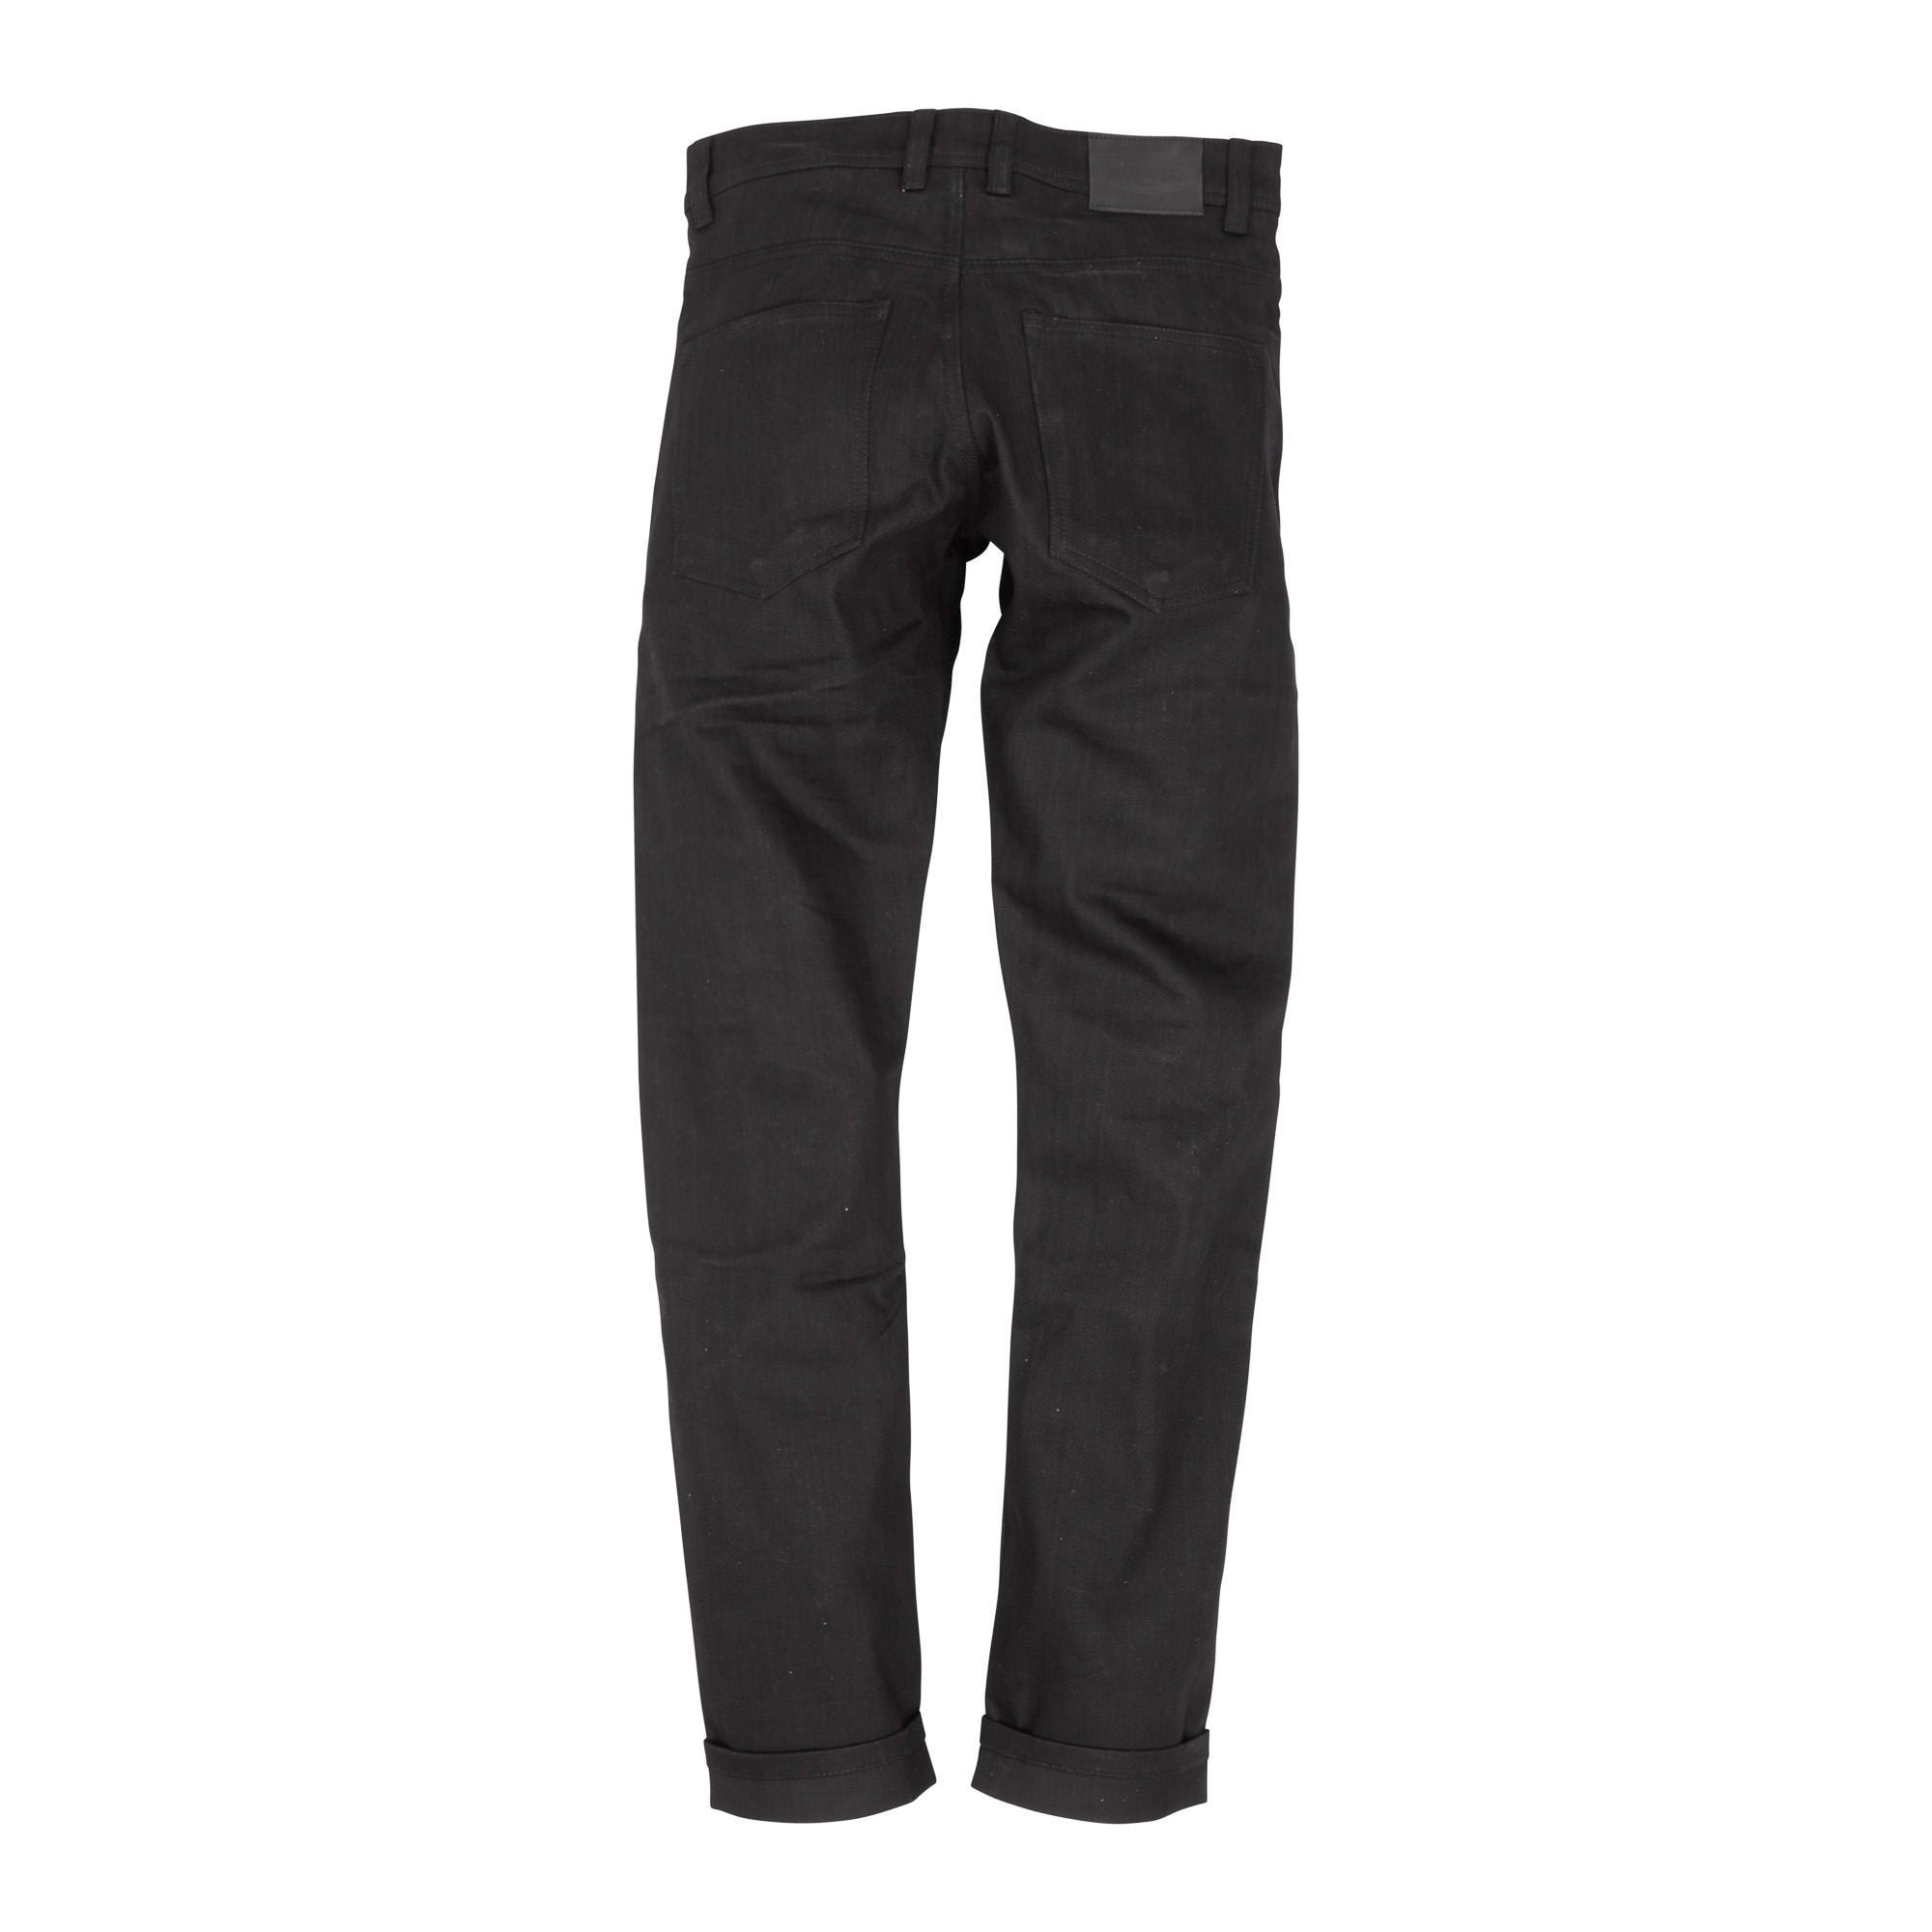 Resurgence Gear Inc. - Resurgence Gear® 2020 Cafe Racer PEKEV Motorcycle Jeans - Black - Men's Trousers - Salt Flats Clothing